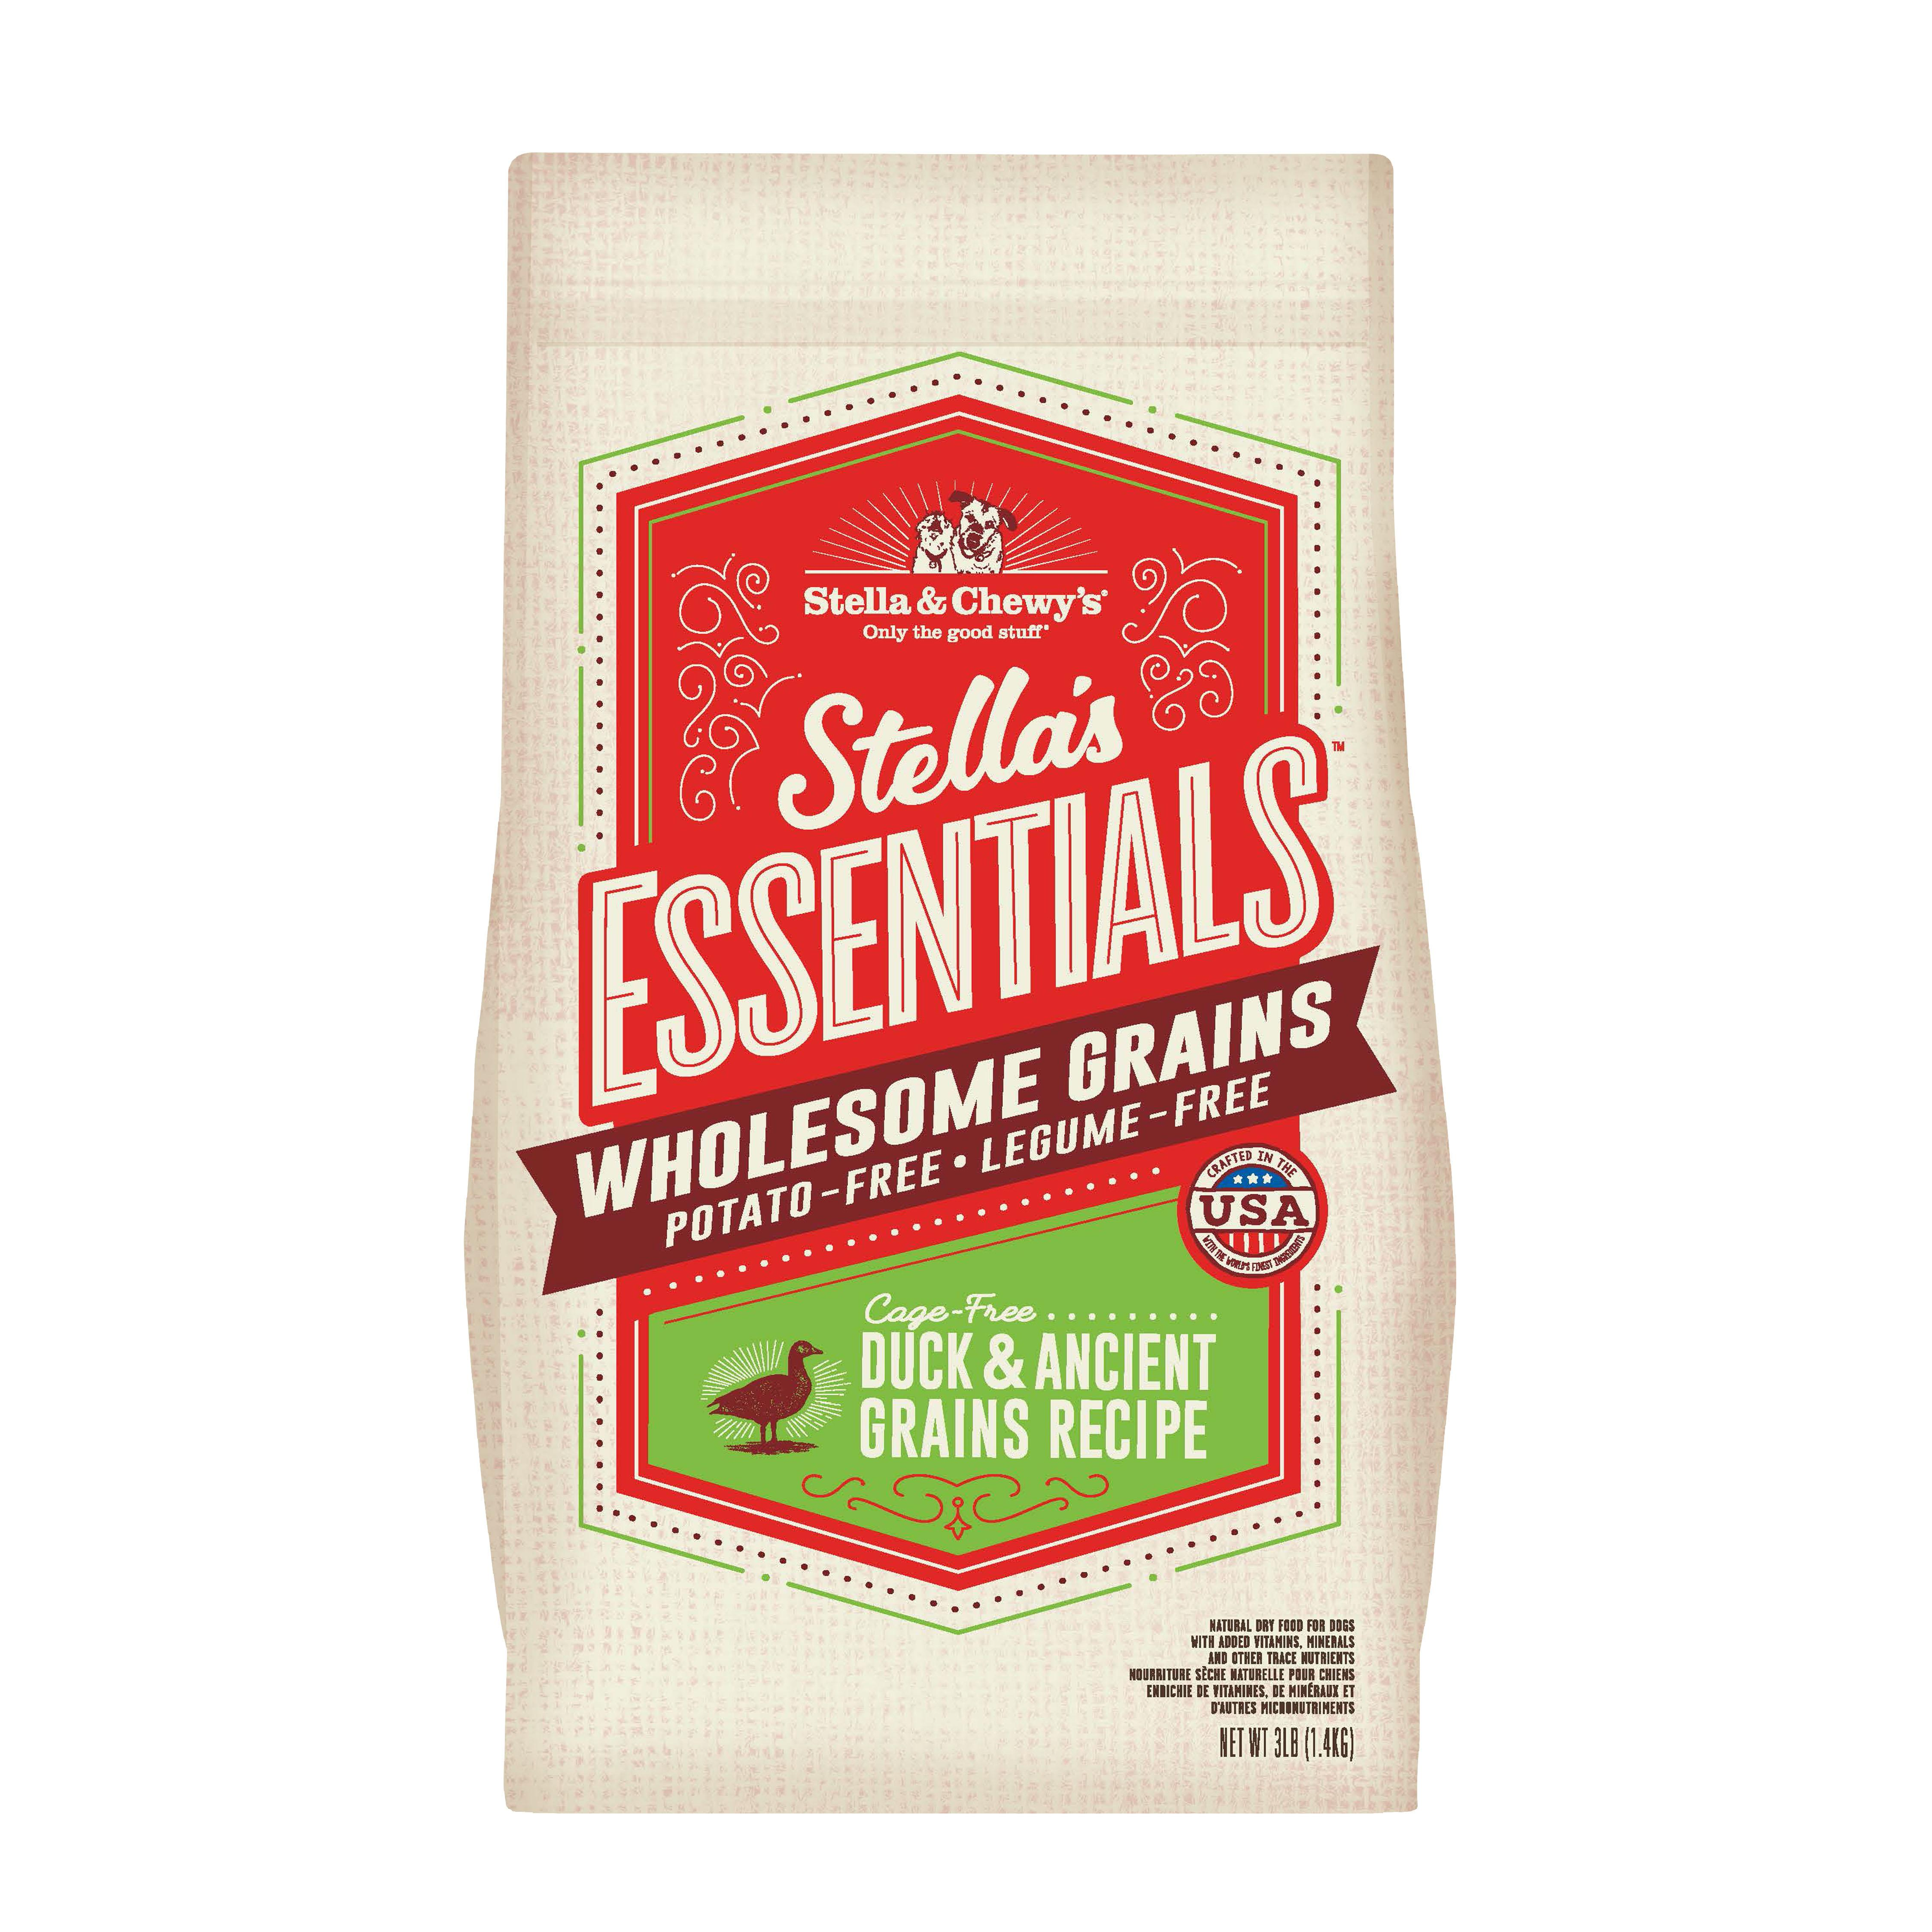 Stella & Chewy's Essentials Wholesome Grains Duck & Ancient Grains Dry Dog Food, 3-lb